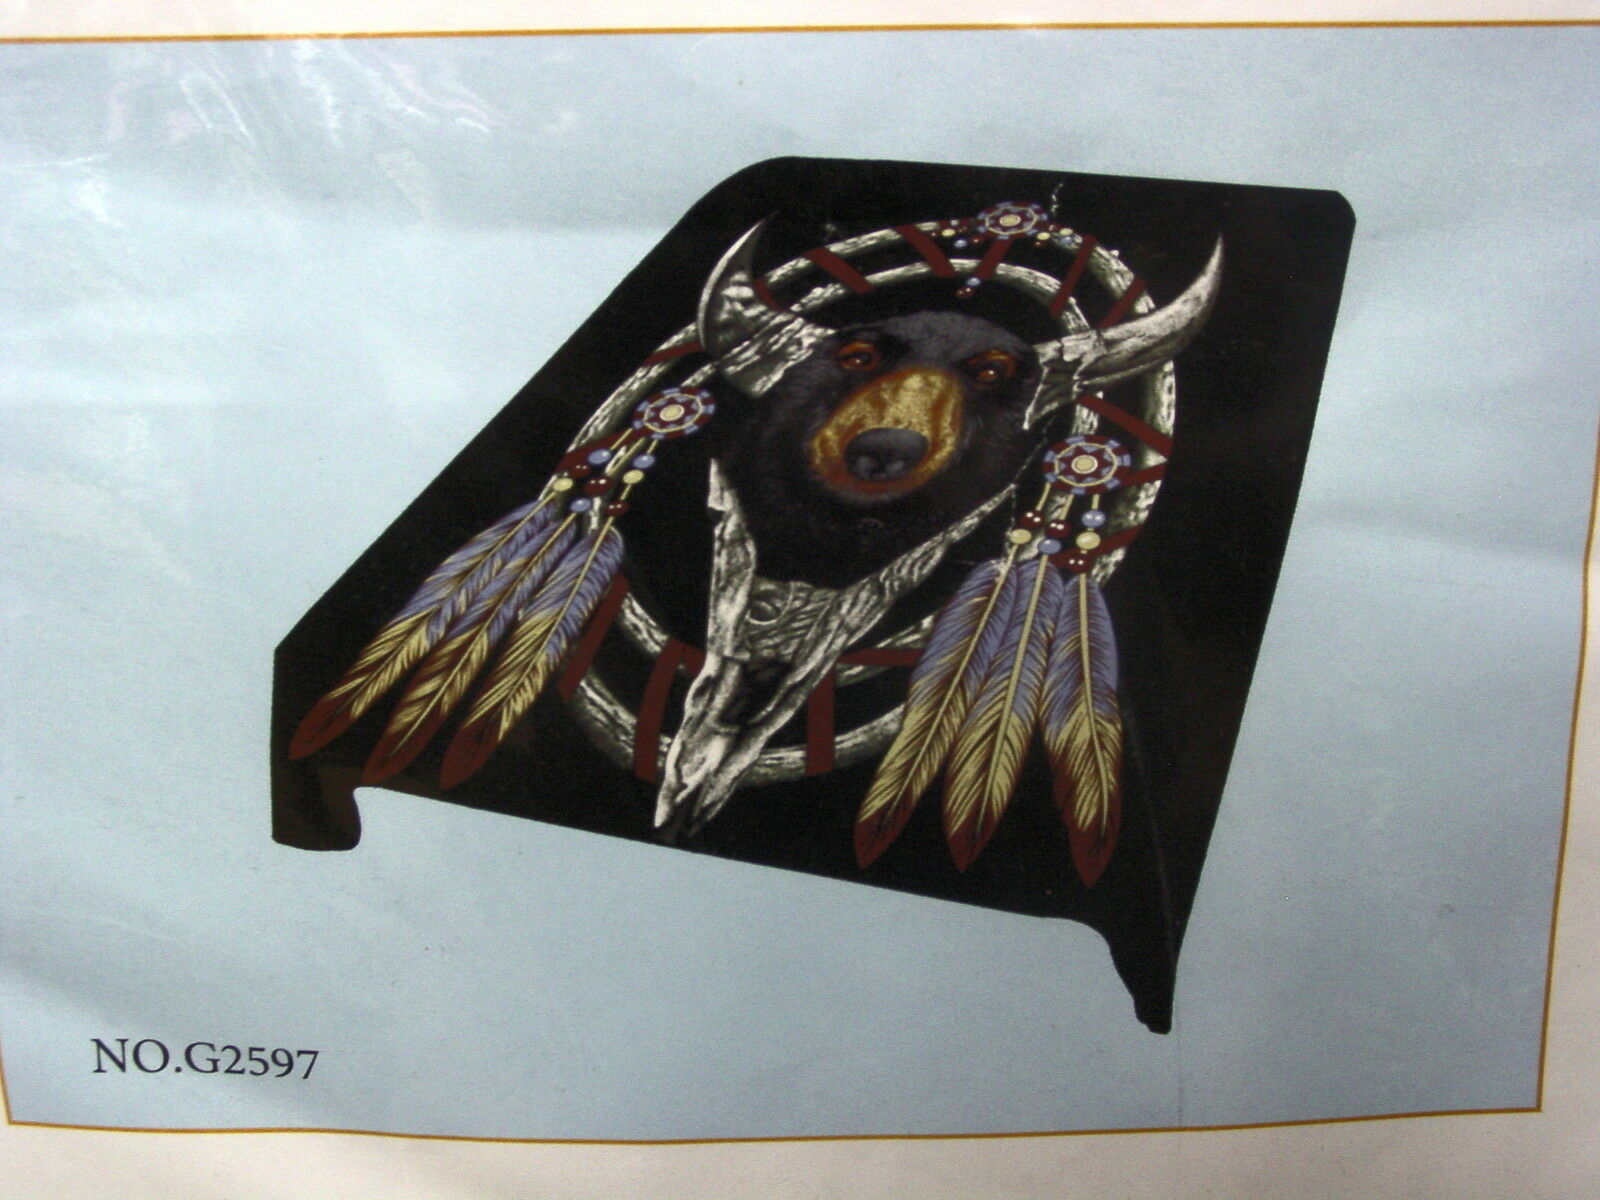 BEAR DREAMCATCHER QUEEN SIZE BLANKET BEDSPREAD